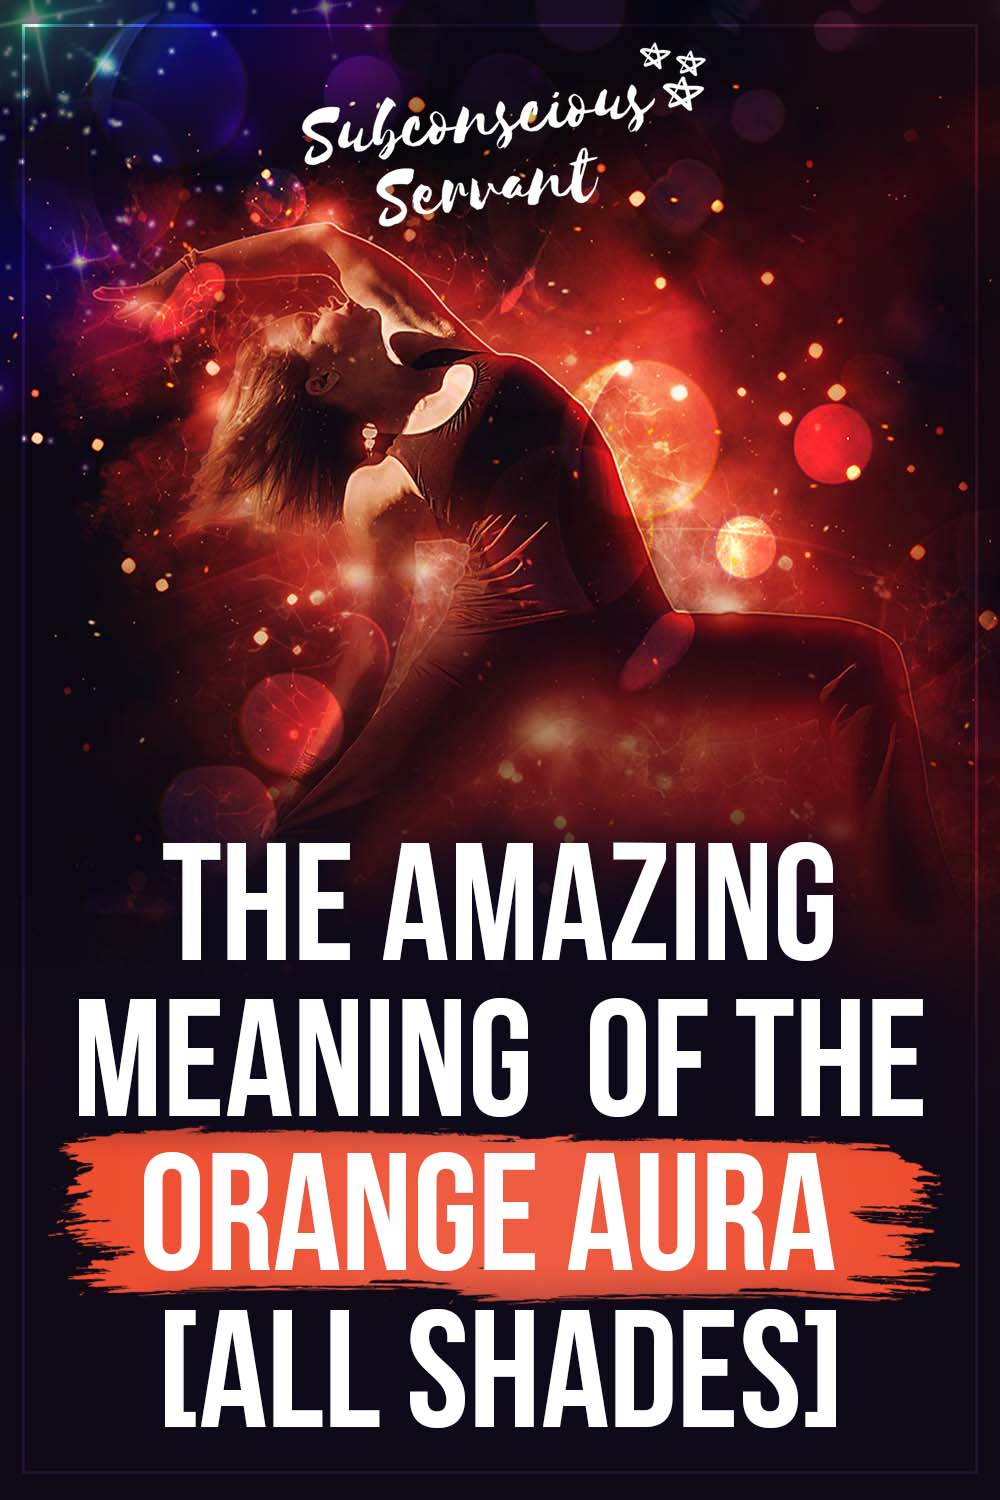 The Amazing Meaning Of The Orange Aura [All Shades]